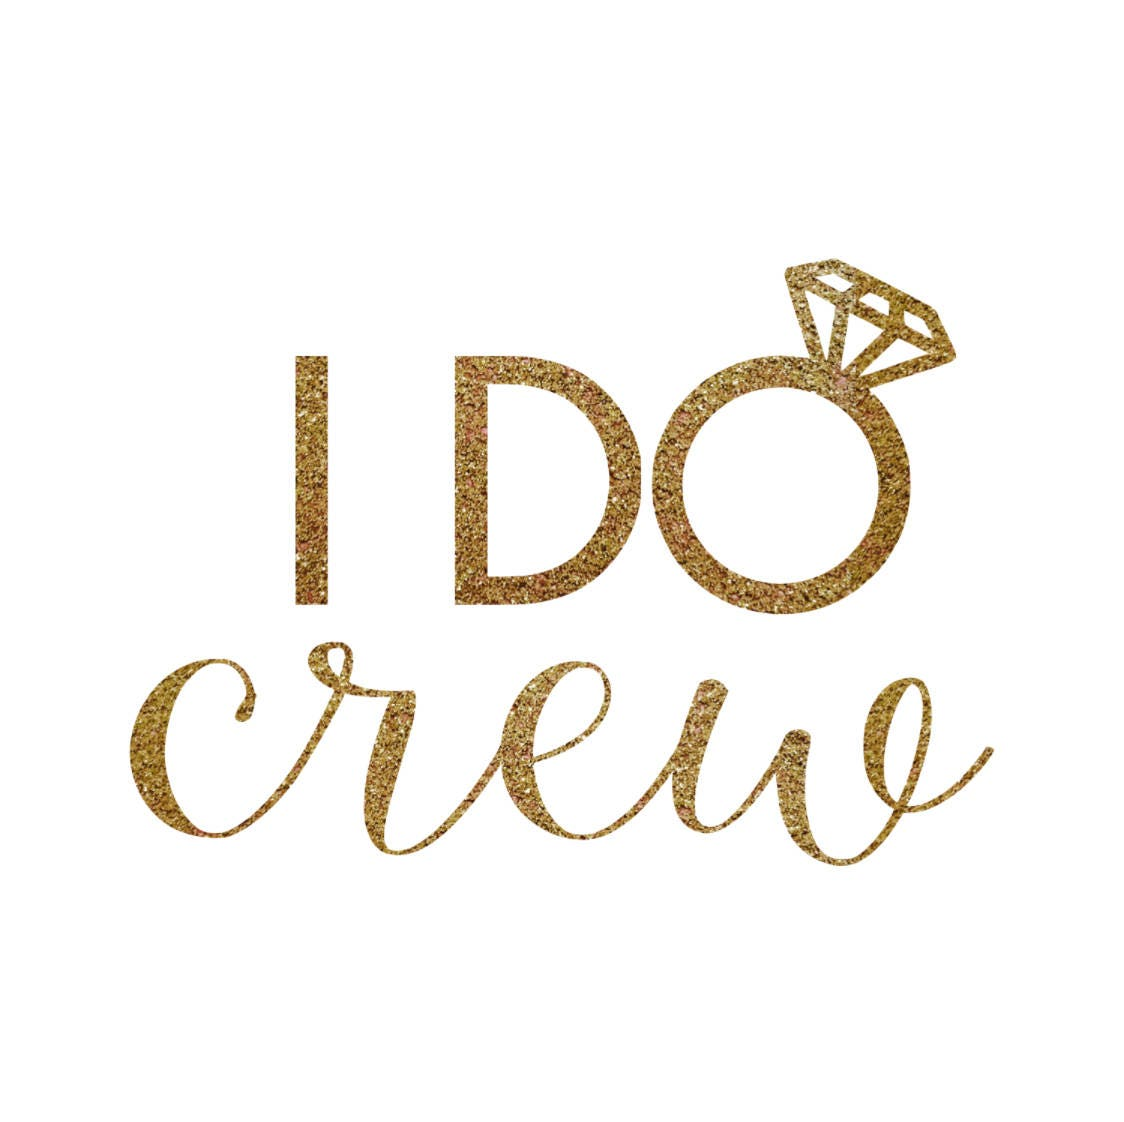 Iron On I Do Crew Gold Glitter Decal Bachelorette Party